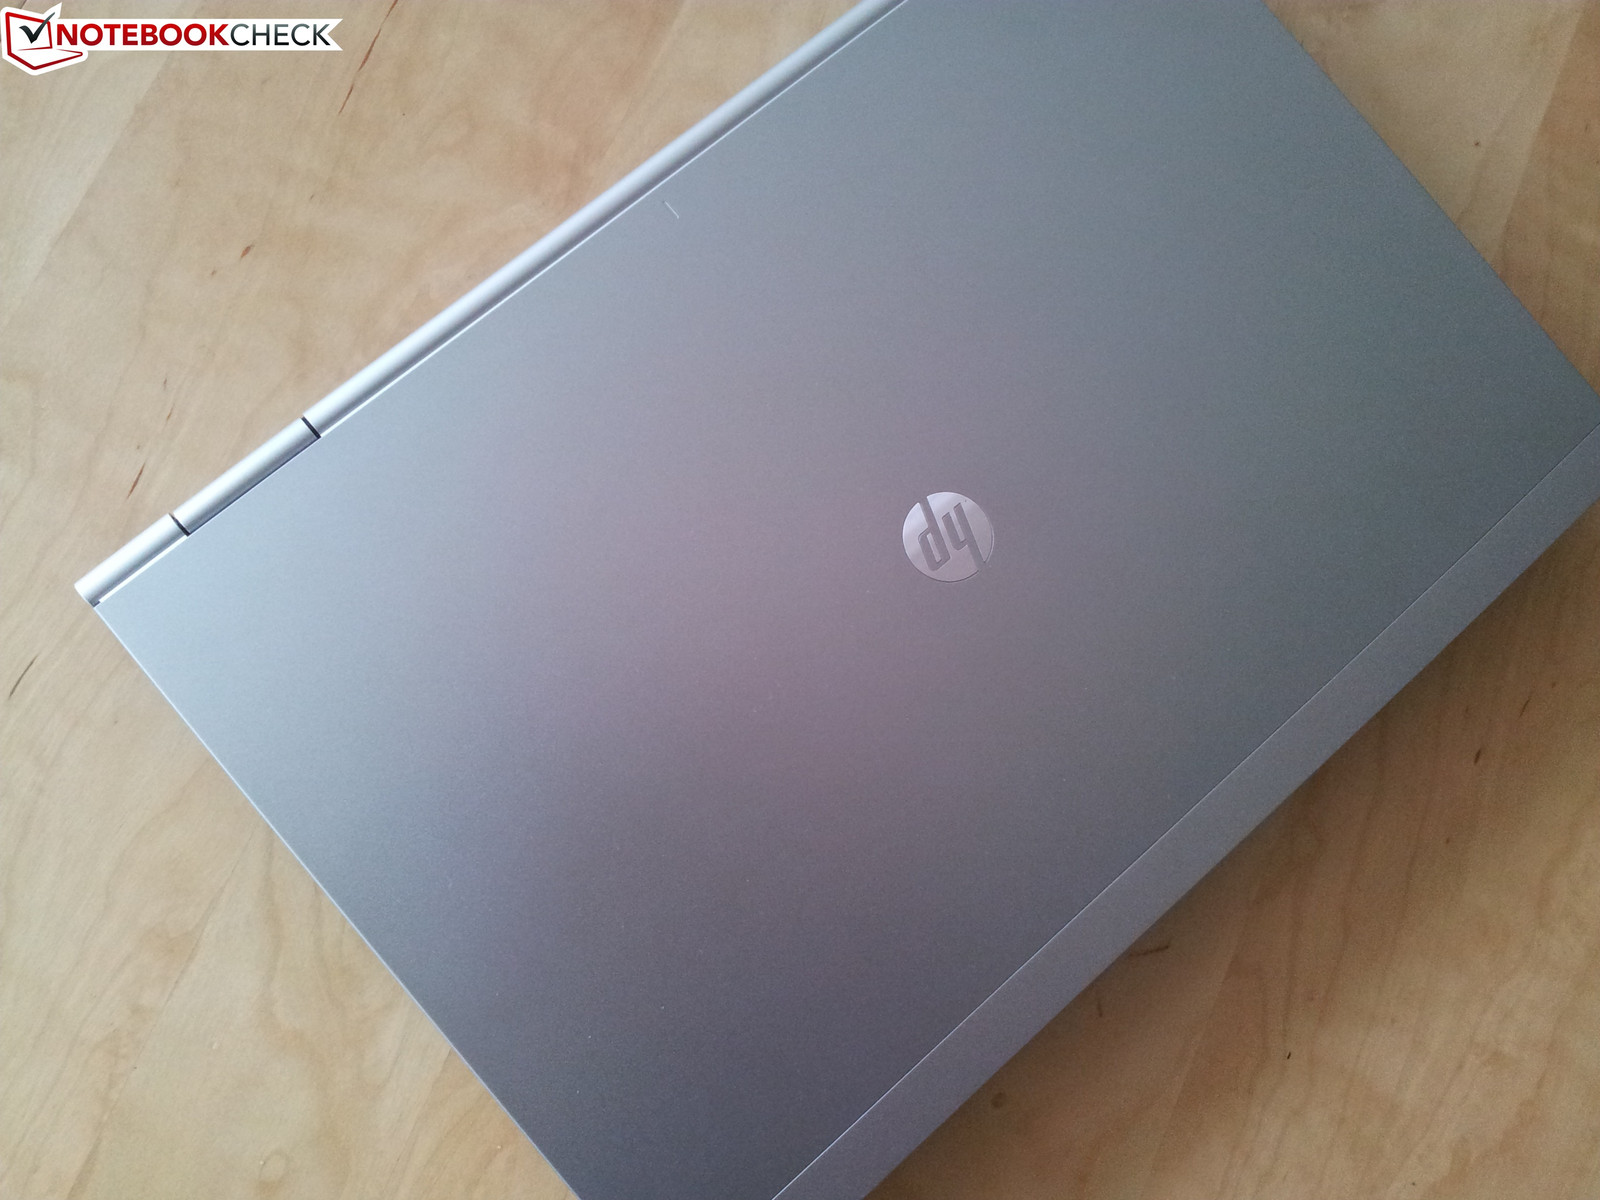 hp elitebook 8470p fingerprint reader windows 10